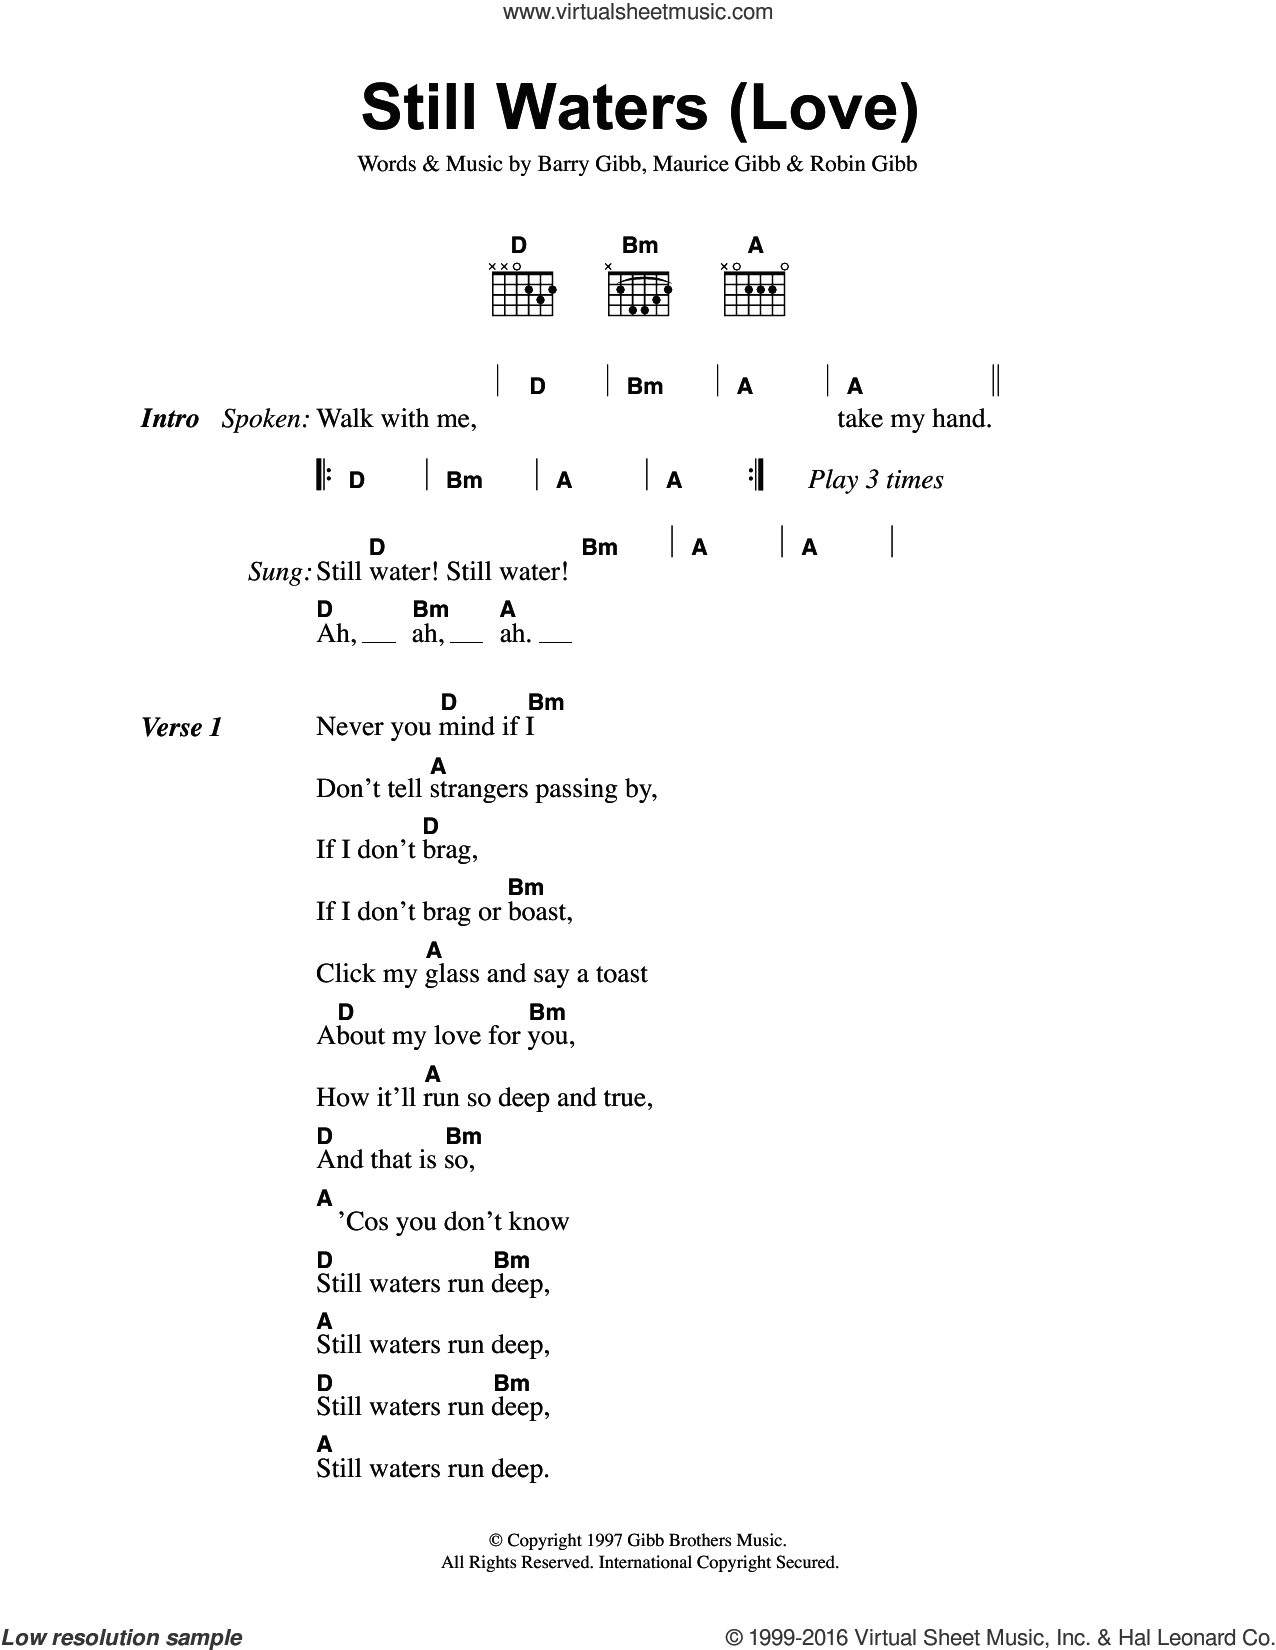 Still Waters Run Deep sheet music for guitar (chords) by Bee Gees and The Four Tops, intermediate. Score Image Preview.